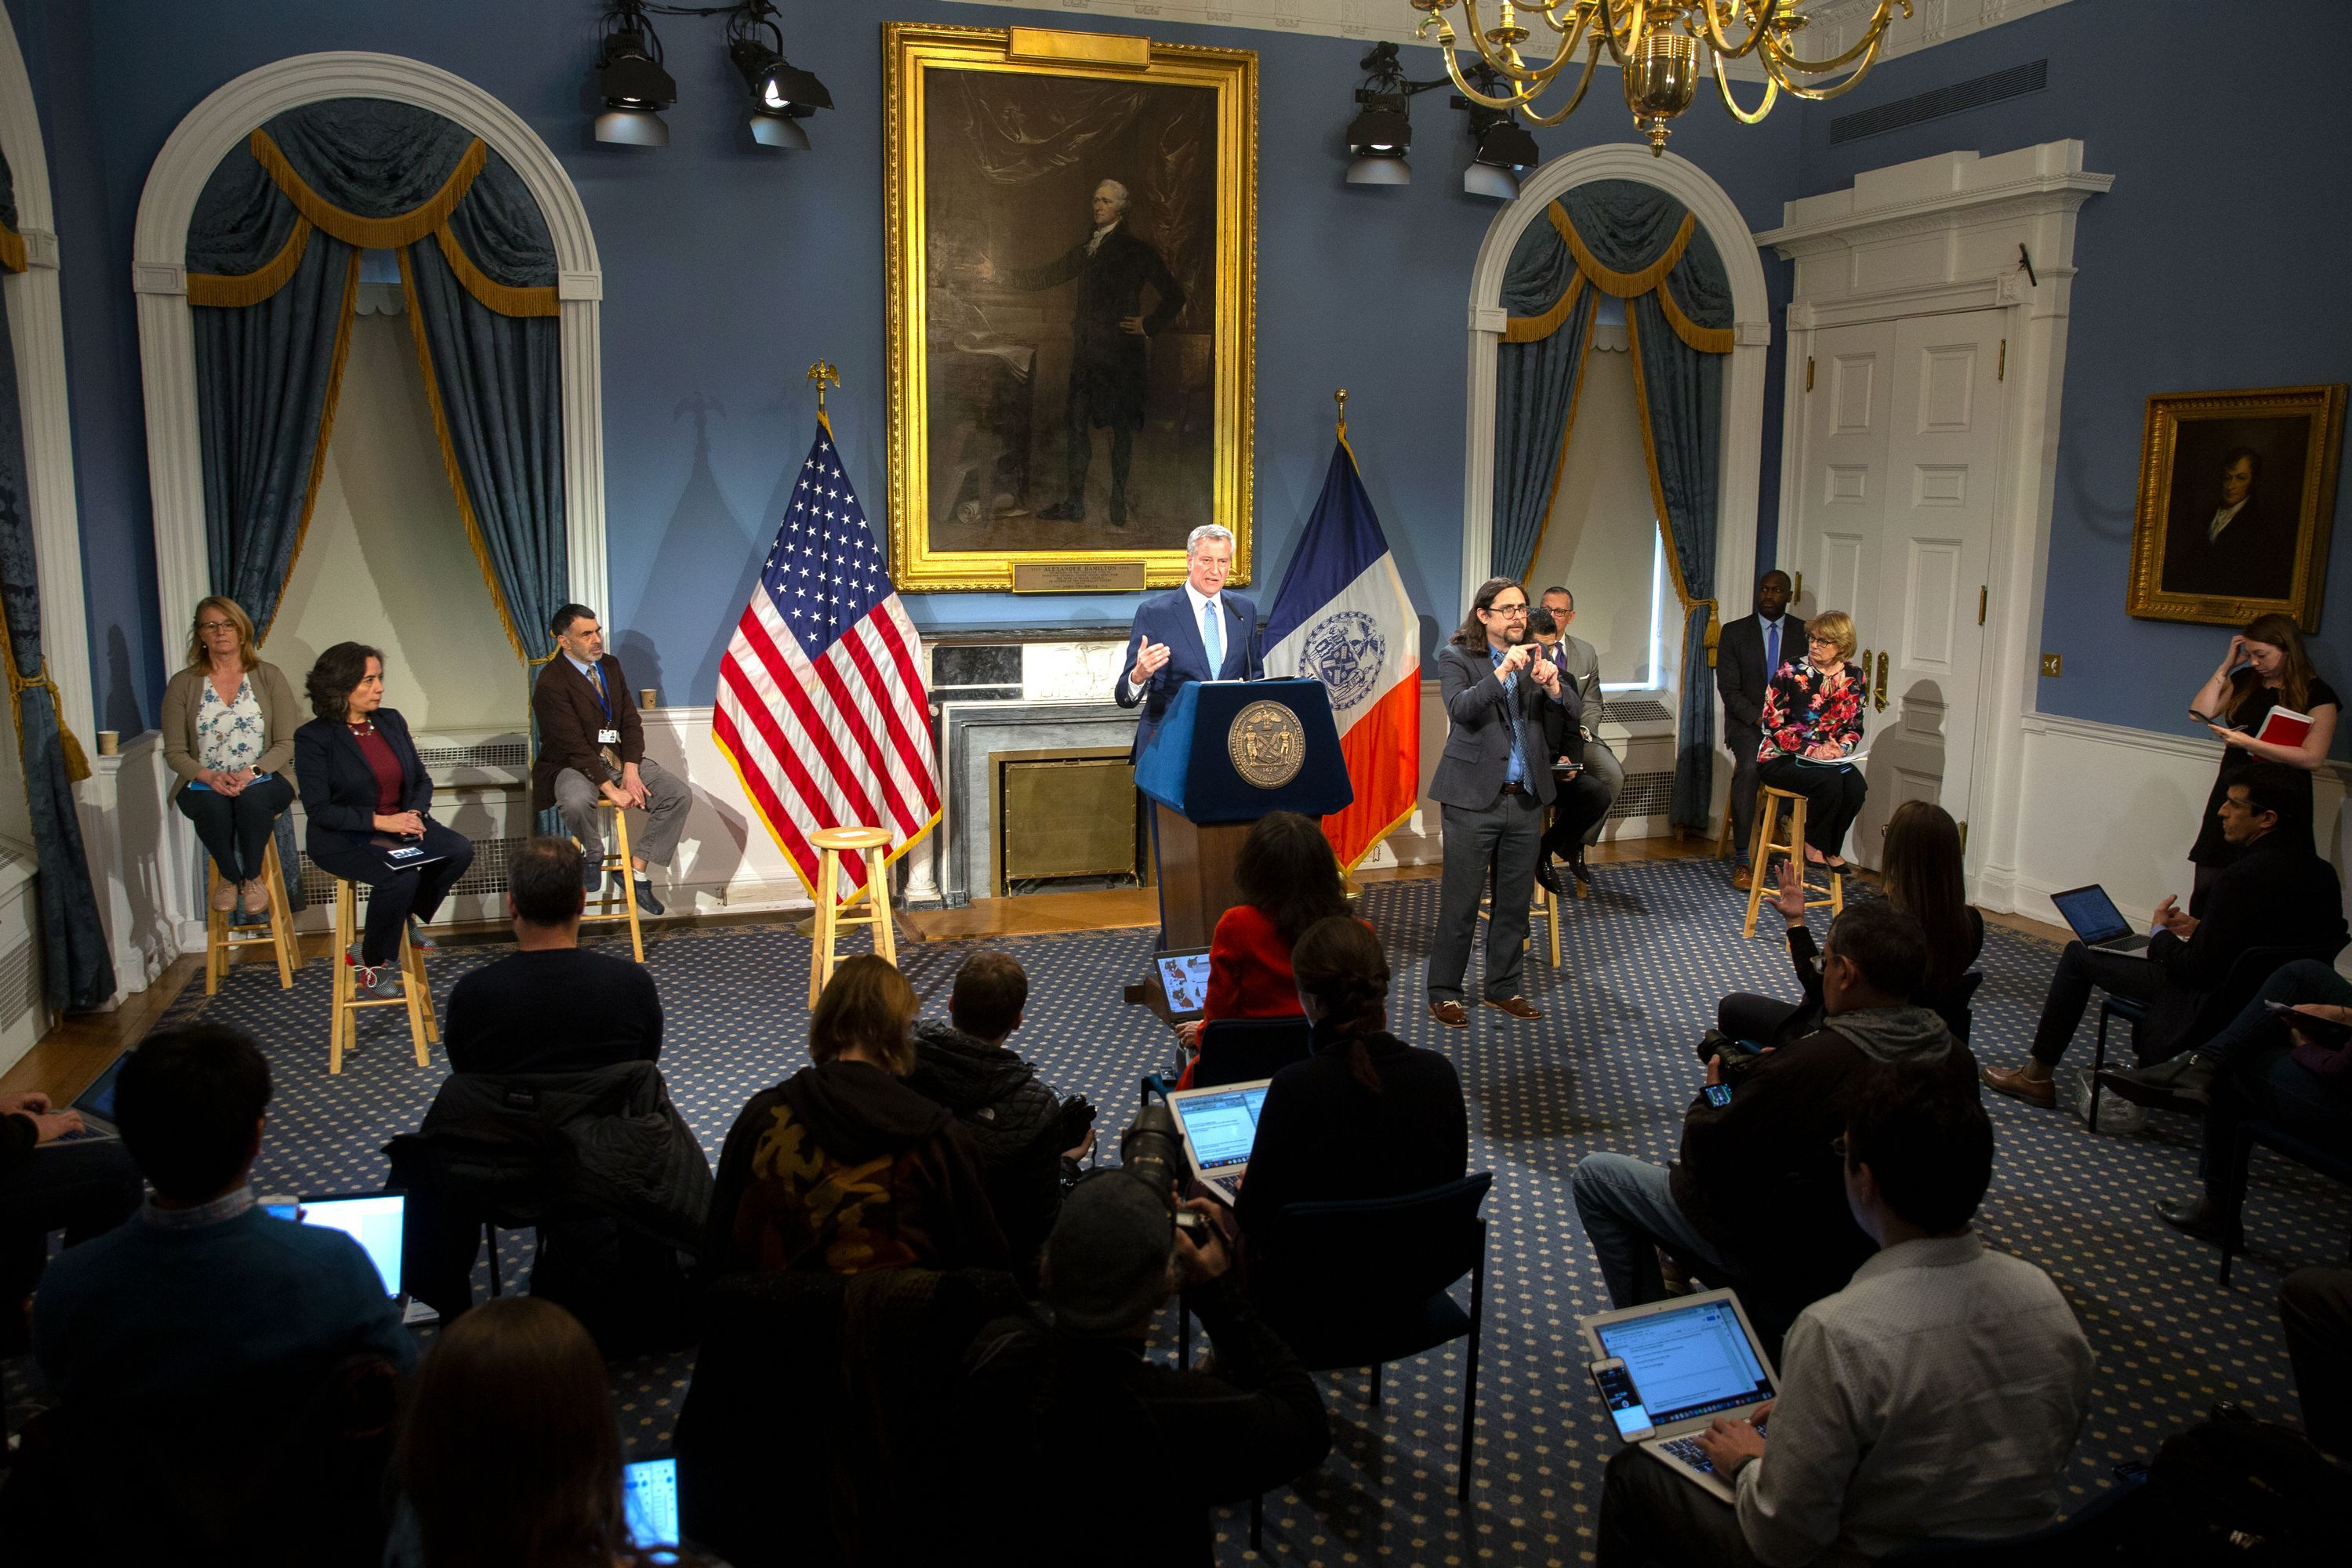 Government officials and journalists were separated during a City Hall press conference to help protect against the spread of the coronavirus.